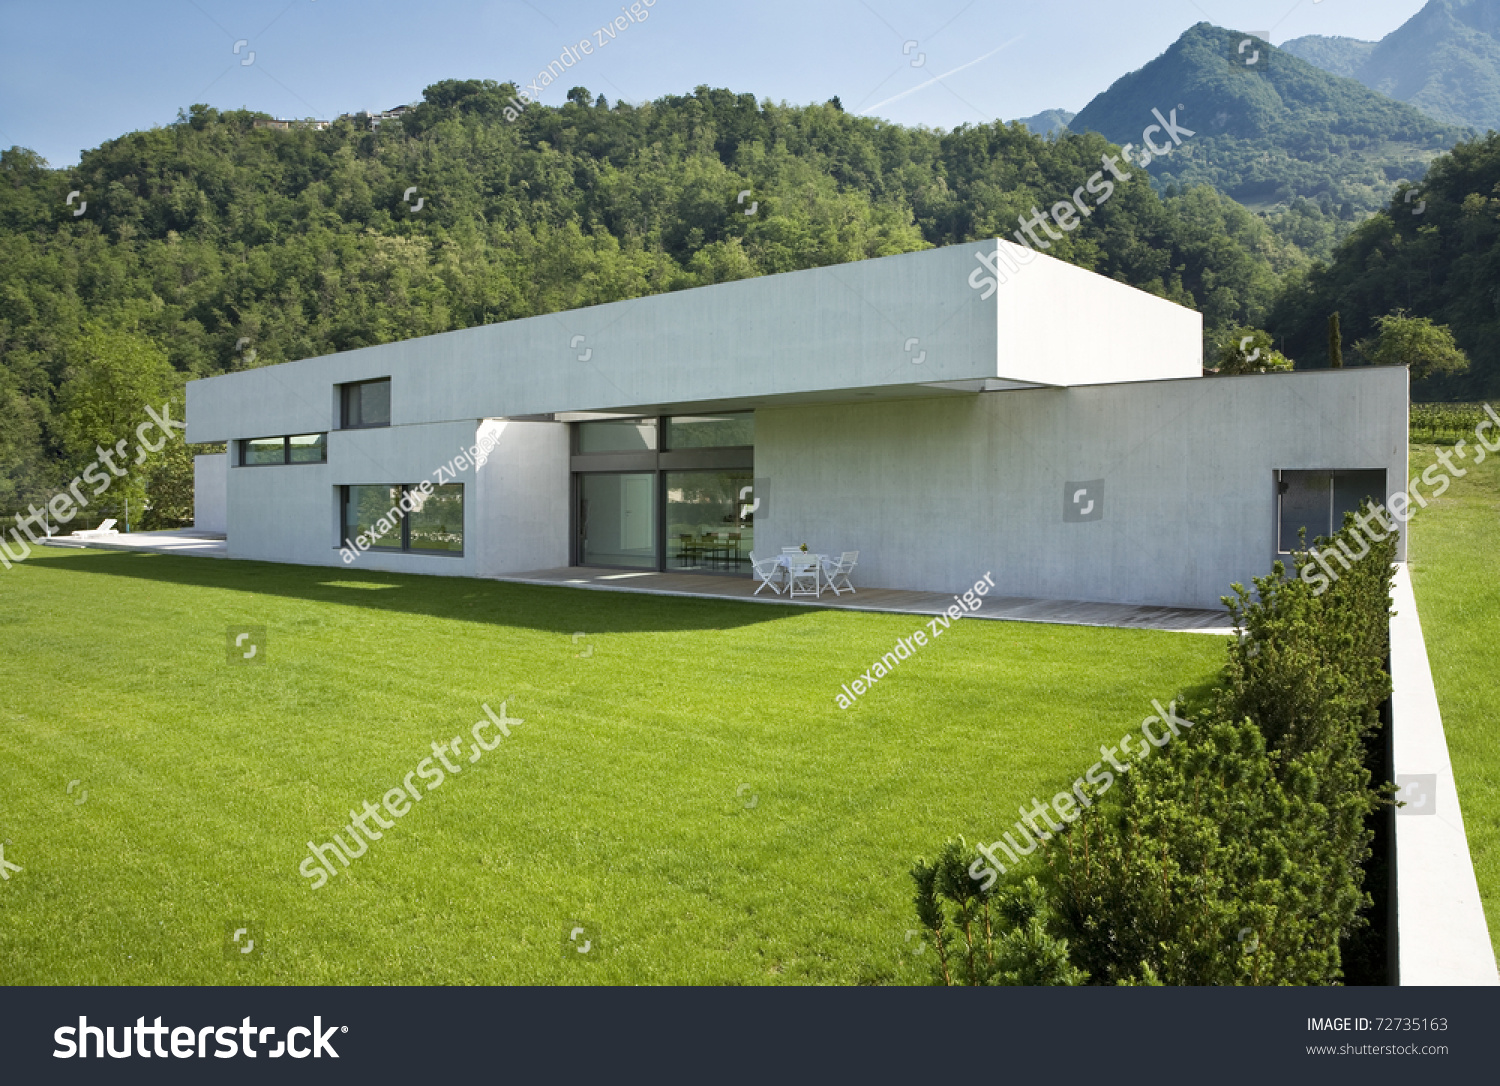 Outdoors Modern House With Green Garden Stock Photo